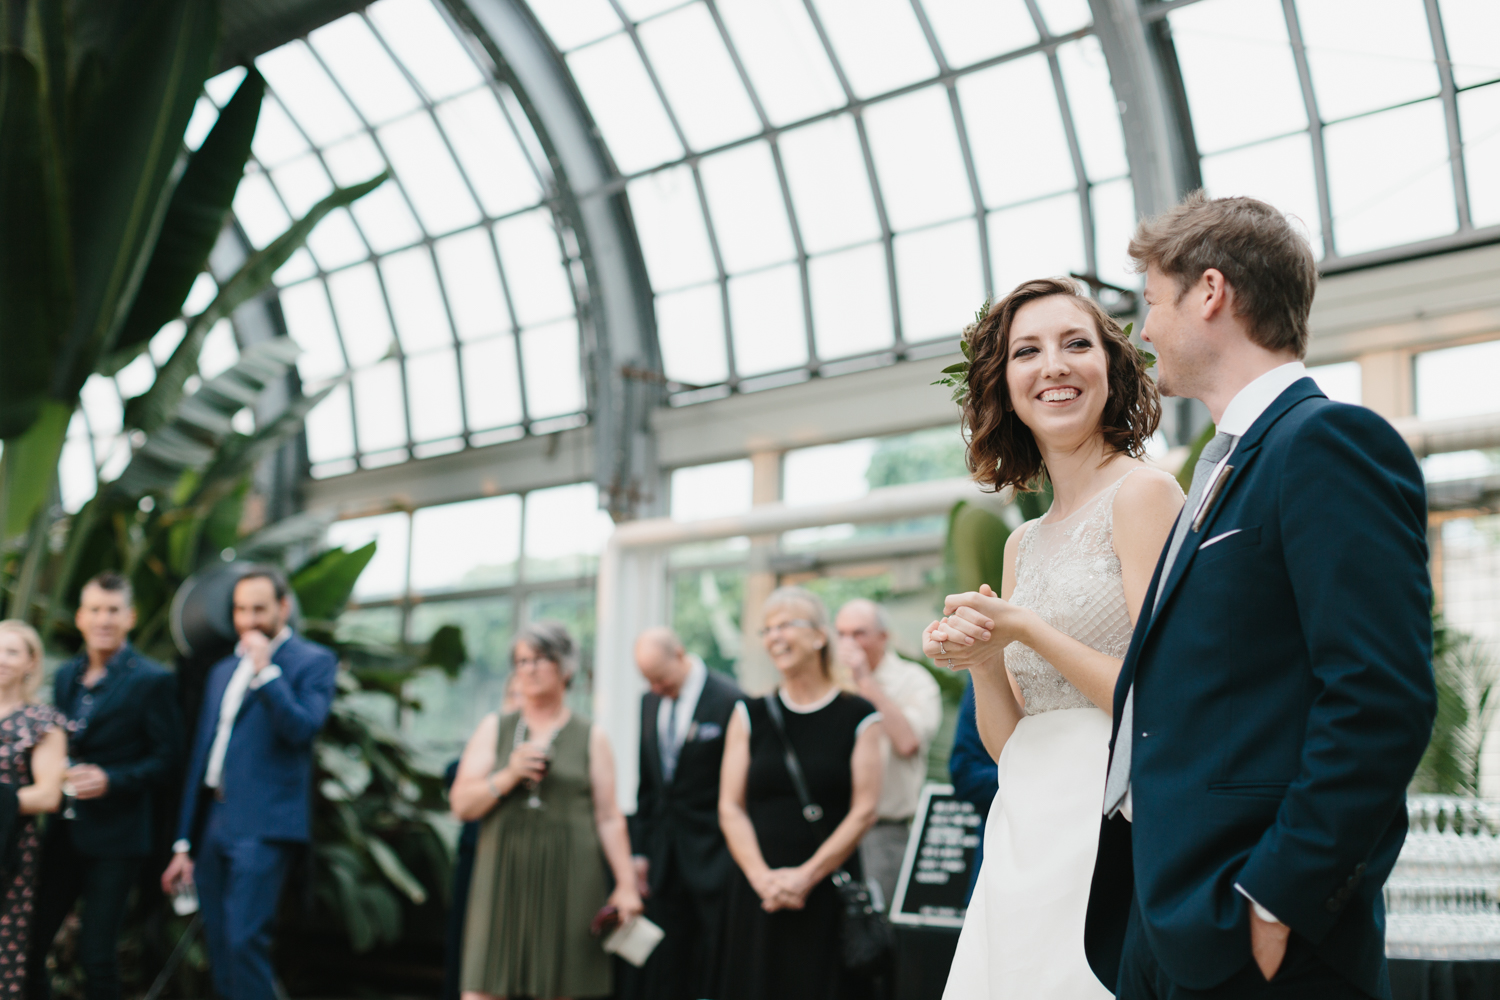 Chicago Garfield Park Conservatory Wedding by Northern Michigan Photographer Mae Stier-076.jpg